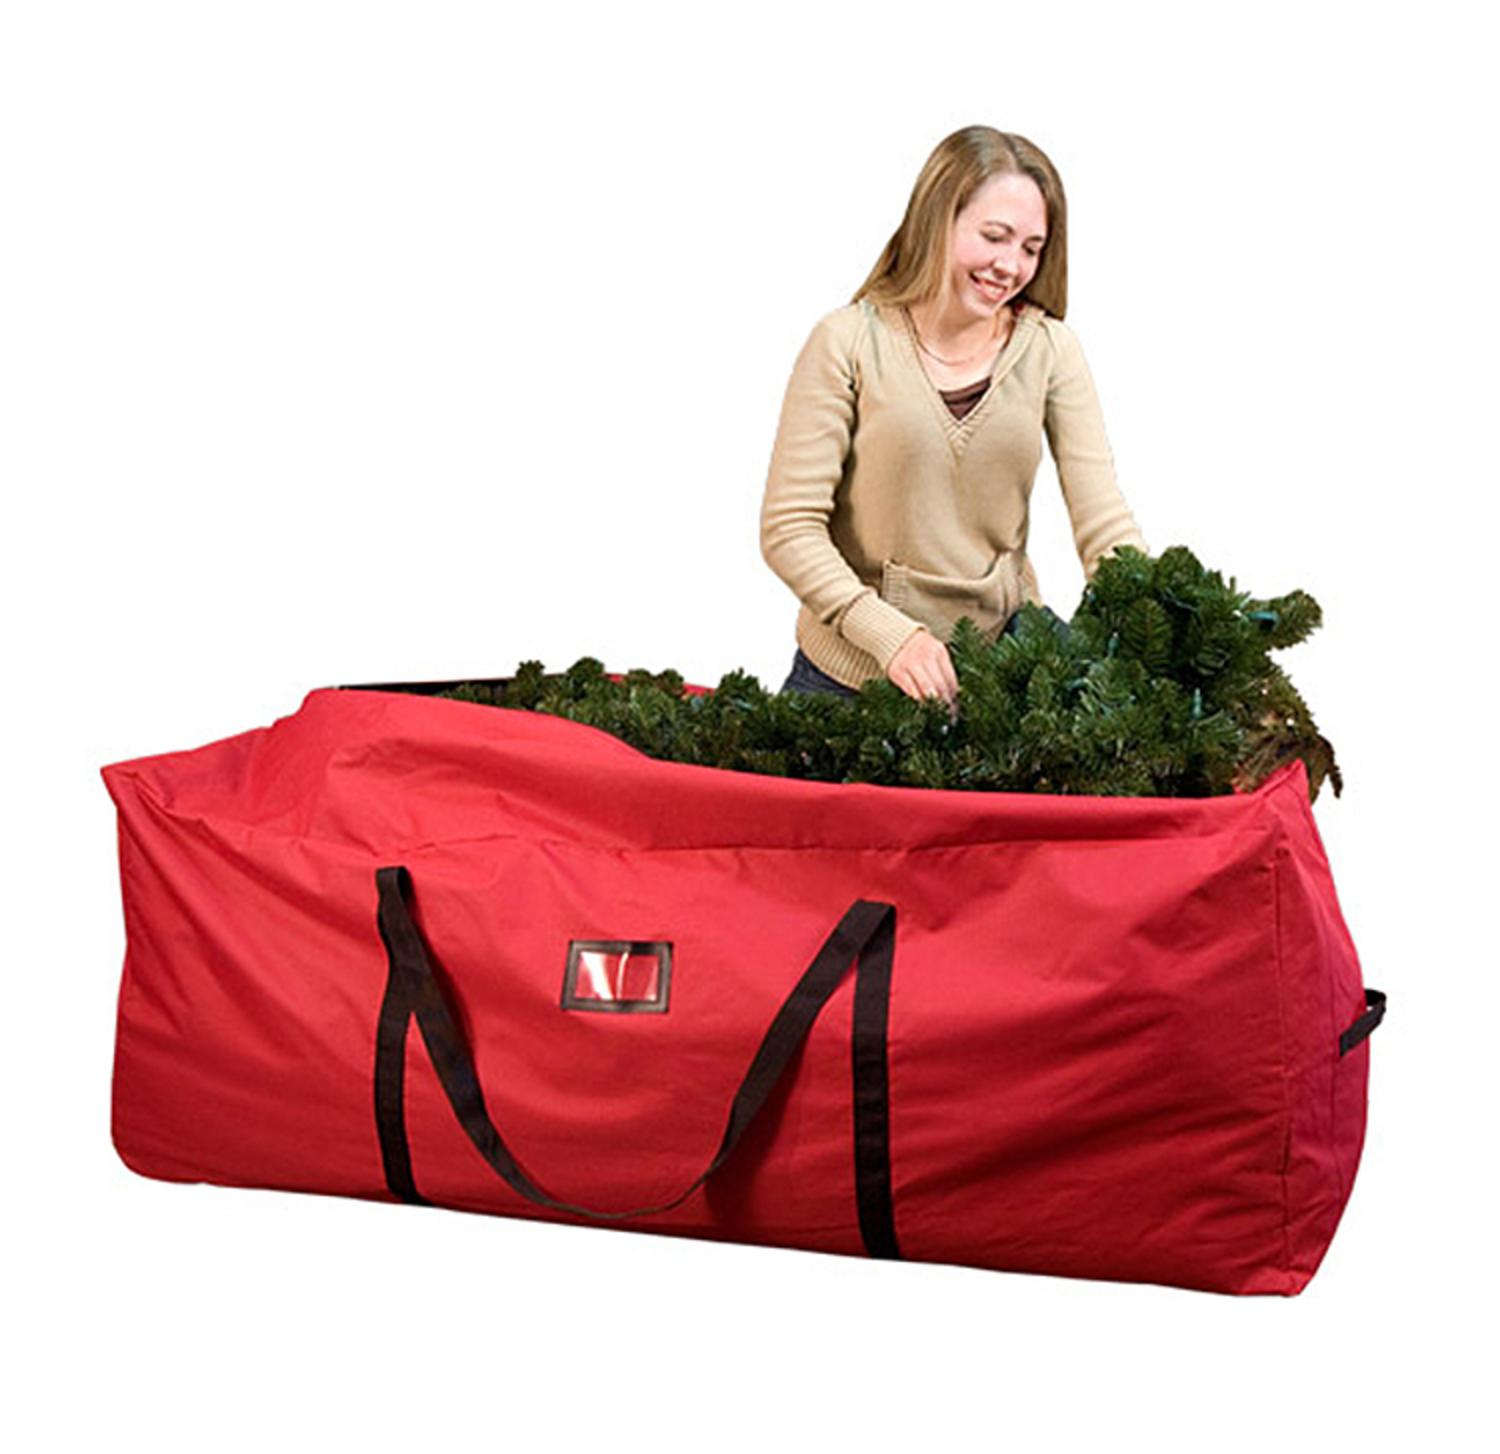 59 extra large christmas tree storage bag fits 6 9 39 artificial trees ebay. Black Bedroom Furniture Sets. Home Design Ideas